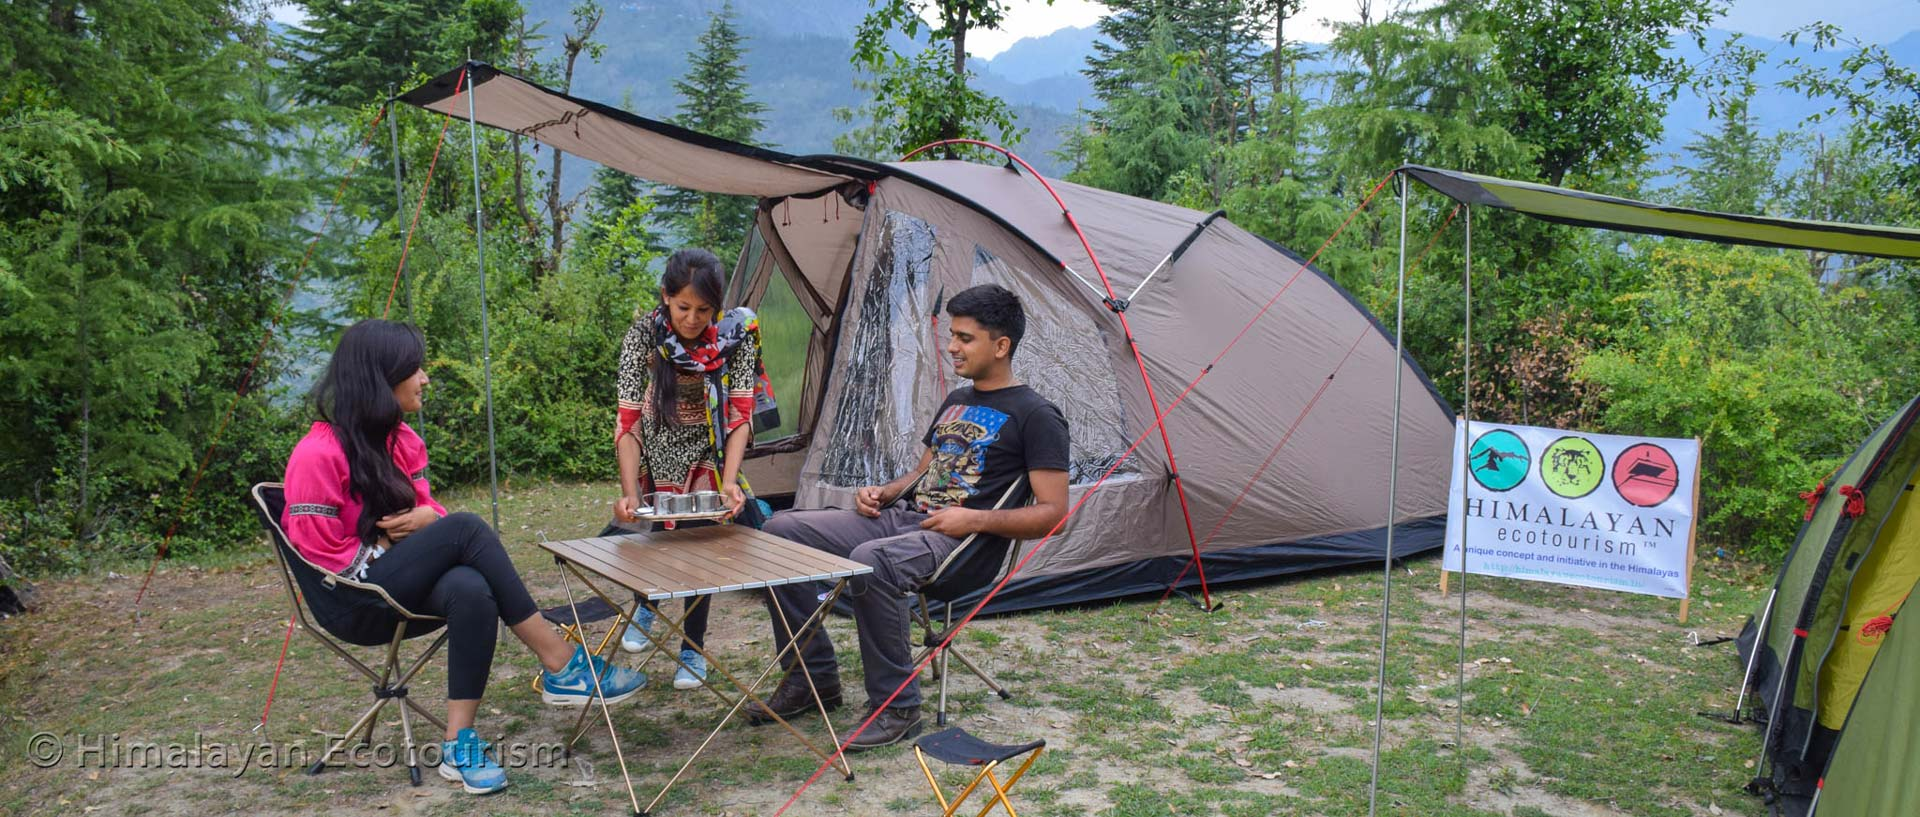 Camping in the Himalayan nature